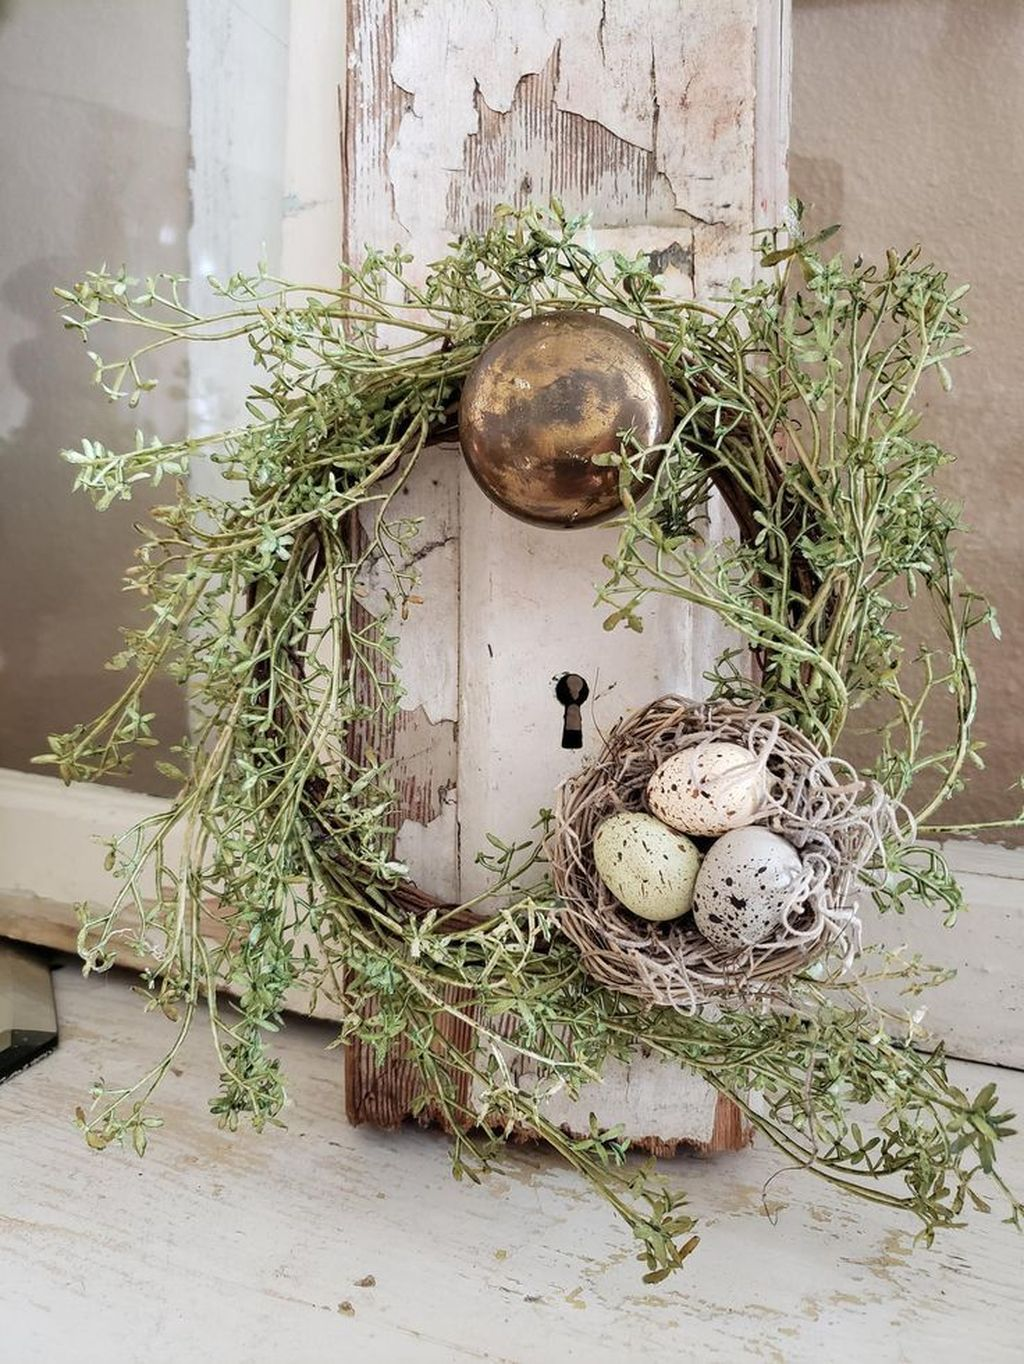 Popular DIY Spring Decor Ideas With Rustic Style 01